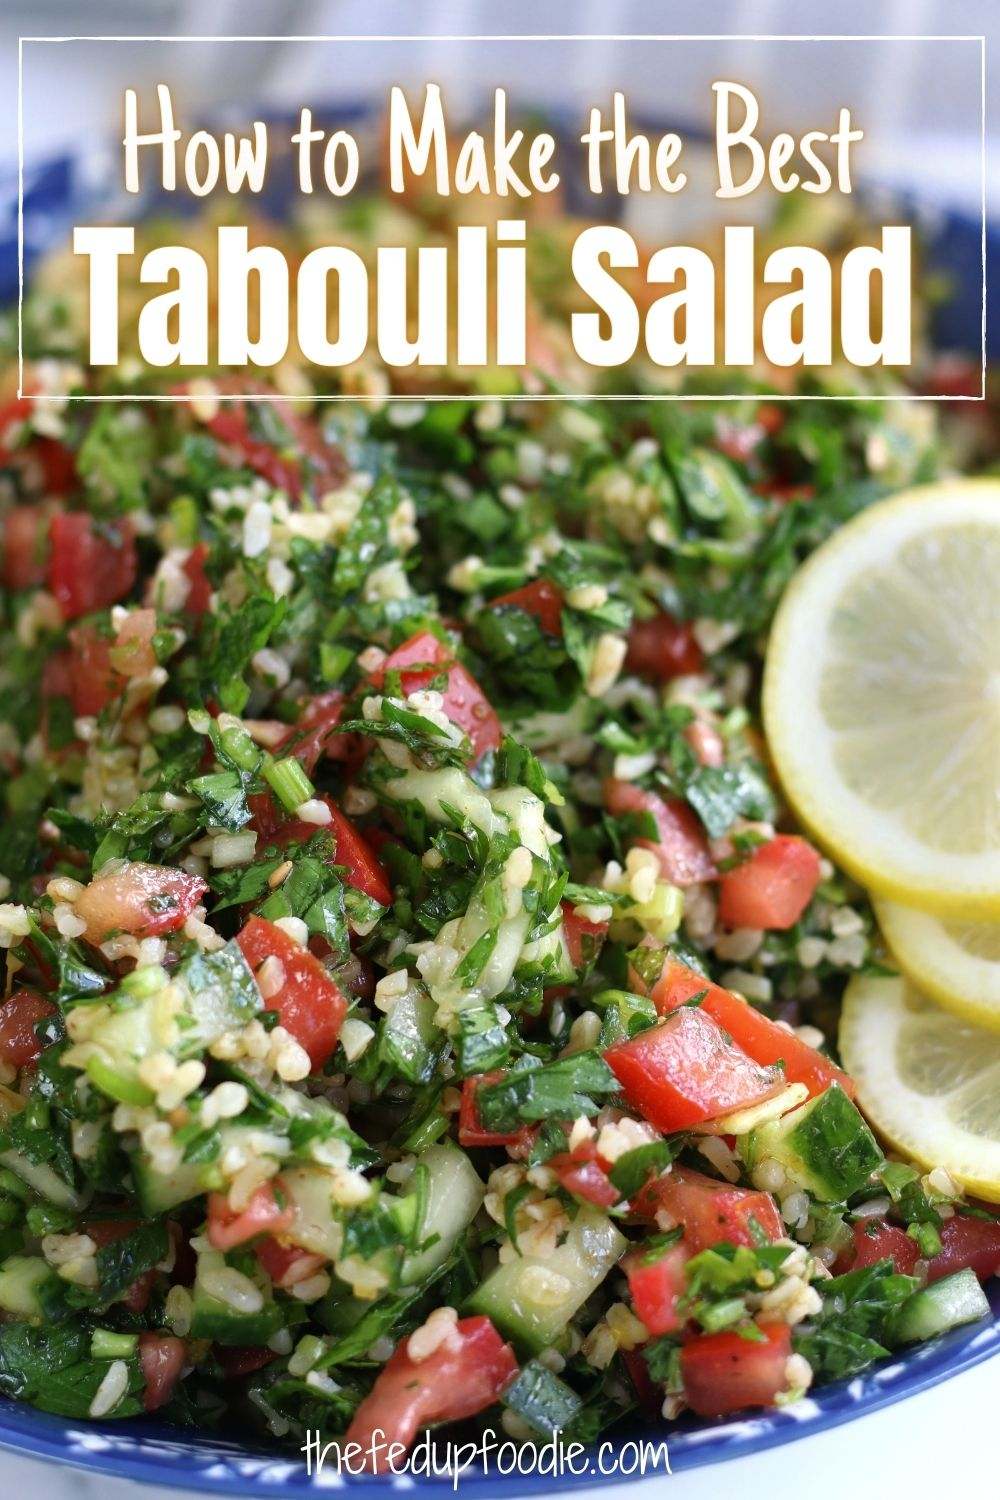 Tabouli Salad is a light and refreshing grain salad that works beautifully next to all kinds of meats or Mediterranean dishes. Made with bulgur wheat, tomatoes, English cucumbers, parsley and mint. This side dish is very easy to make and is delicious during the hottest months of the year. #TabouliSalad #TabouliRecipe #Tabouli #Tabbouleh #TabboulehRecipe #TabboulehSalad #BulgurWheatRecipes #MediterraneanSalad